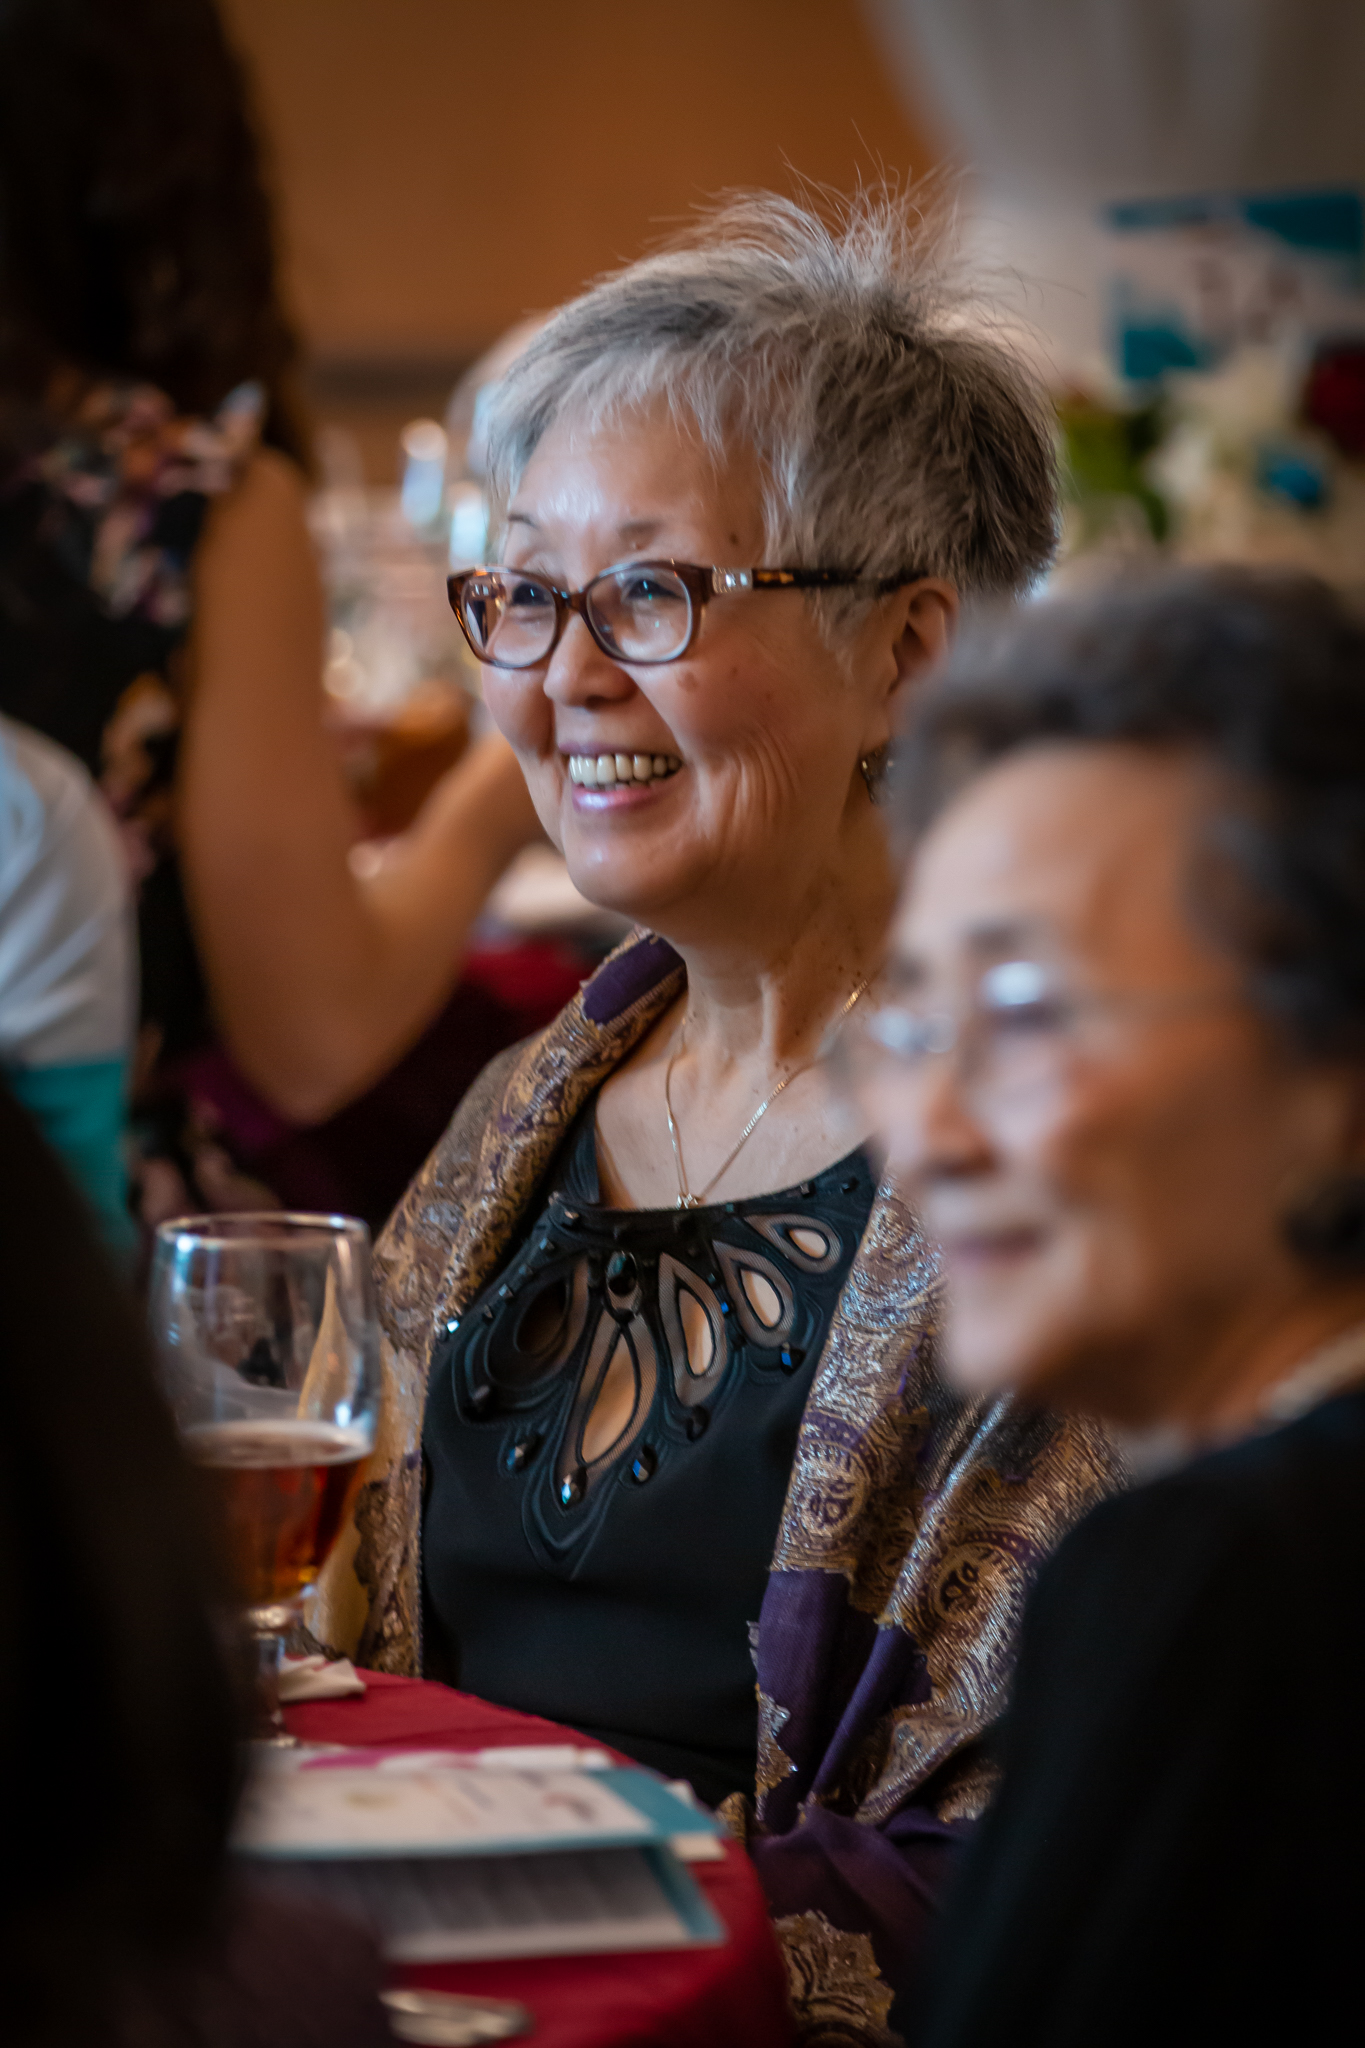 190310 Sakura Gala 2019 17-10-52-2 - Photo by Adam PW Smith.jpg